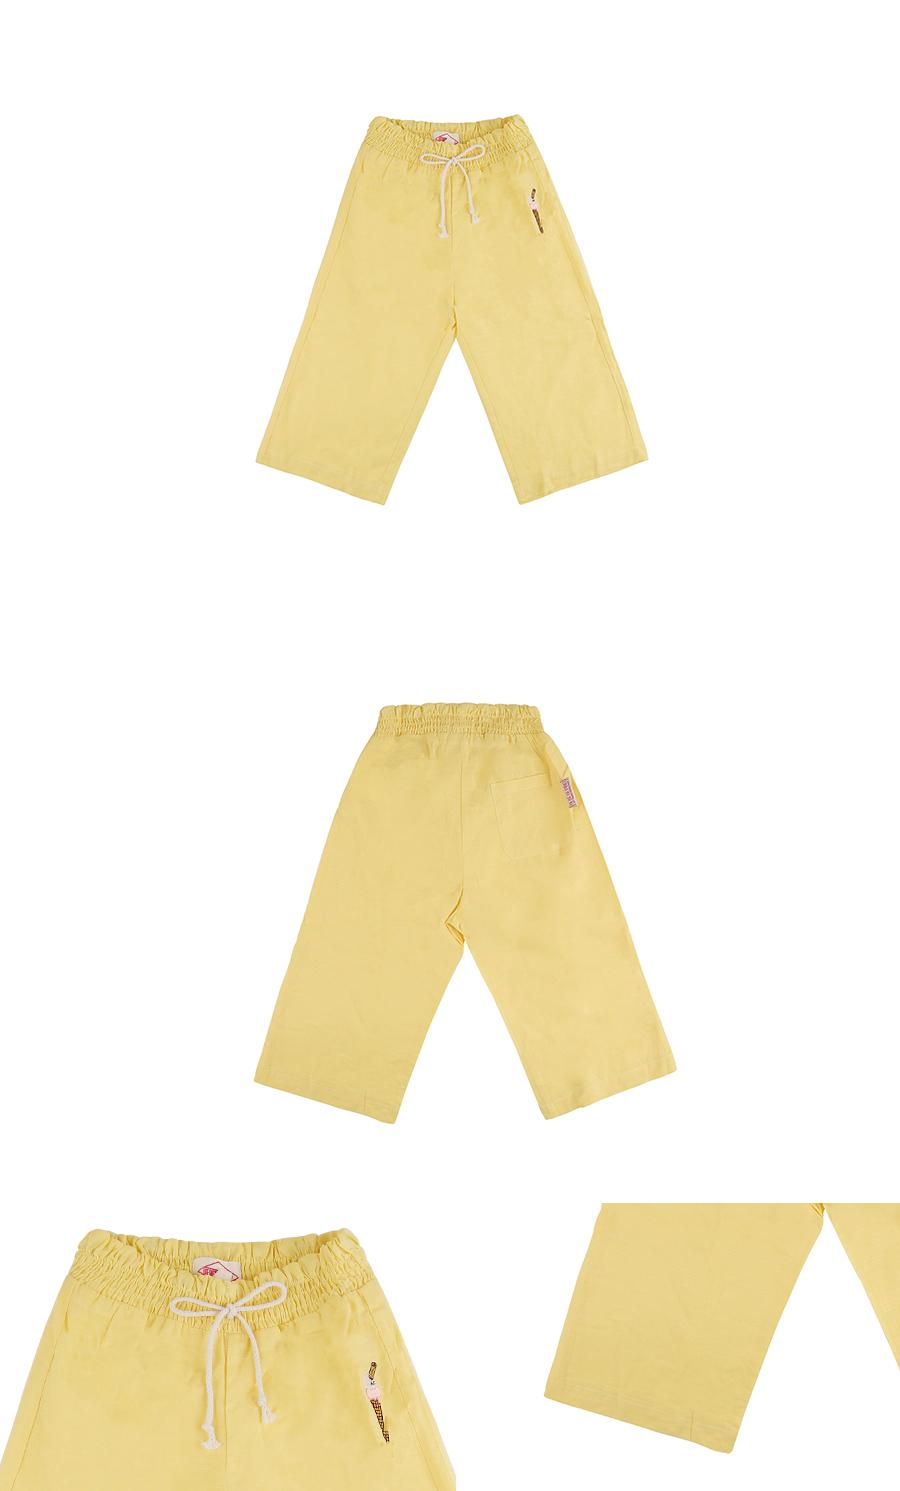 Ice cream cone ruffle ankle pants 상세 이미지